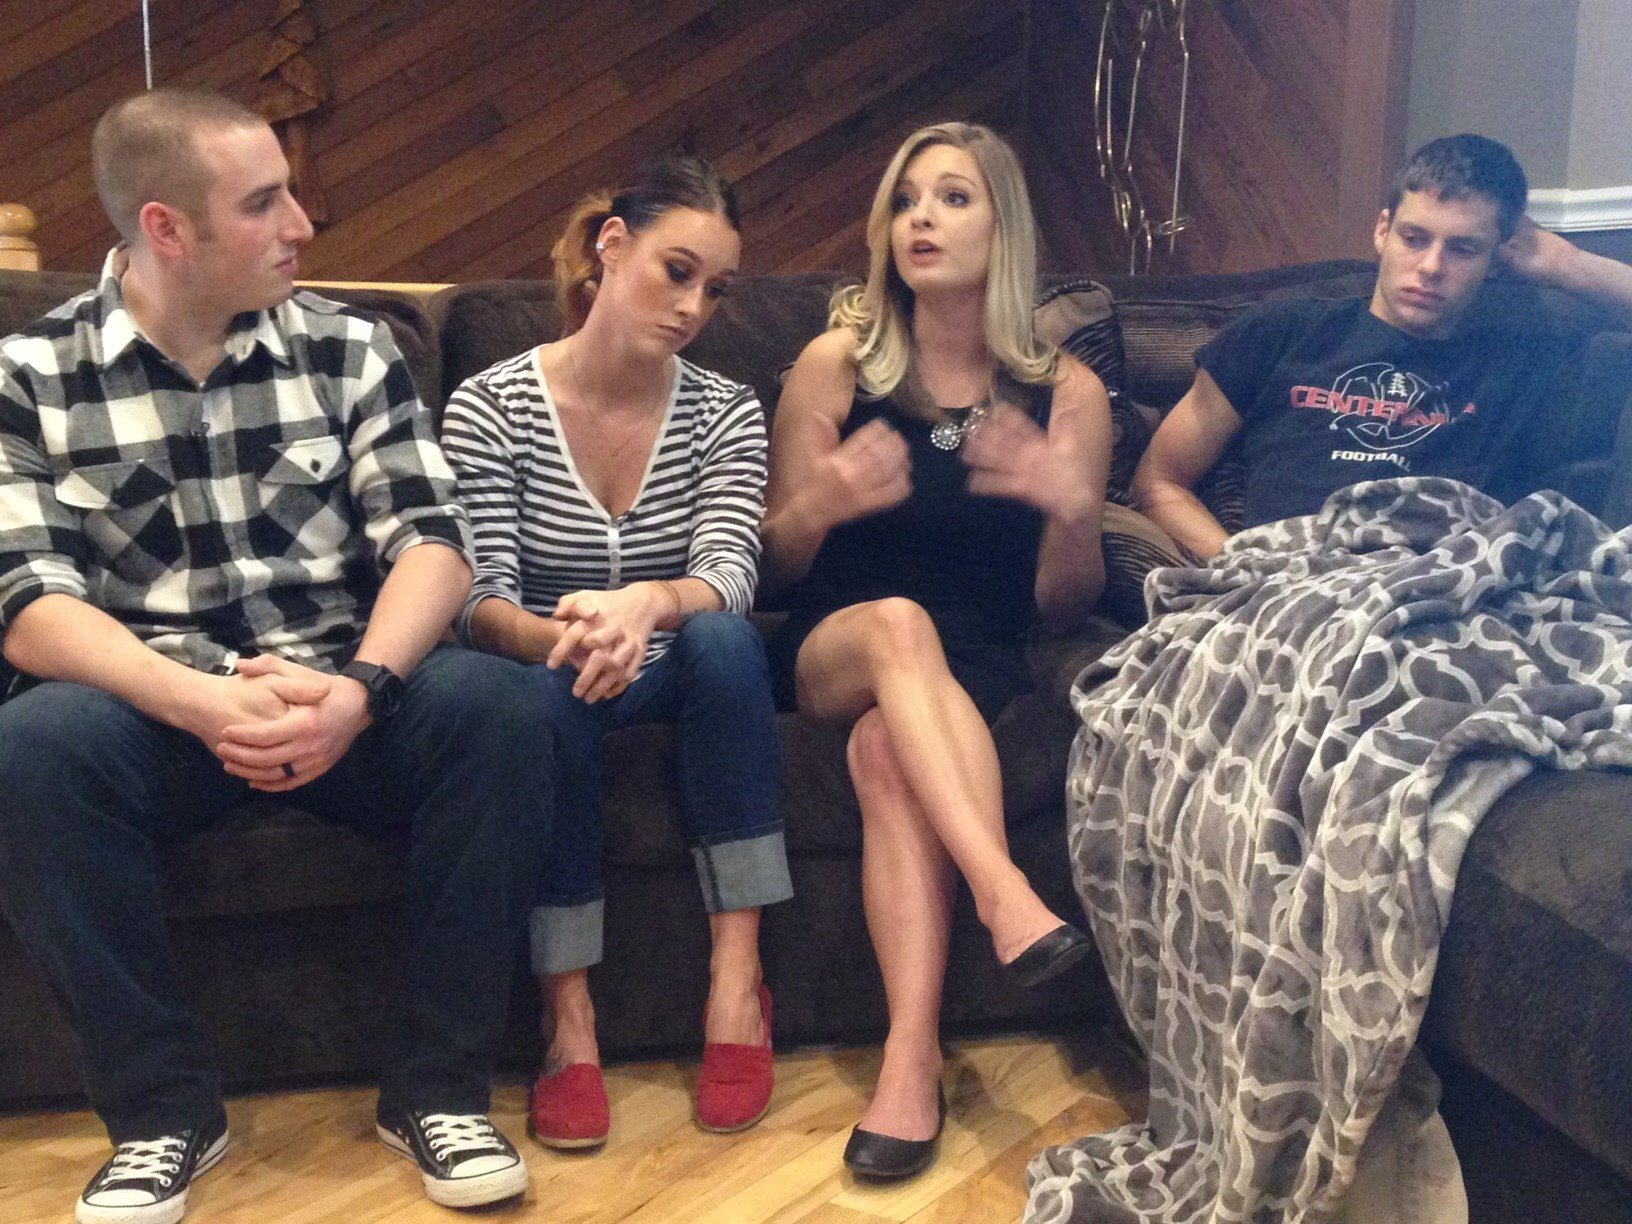 From left to right:  Mychal and Kristy Costanzo, Victoria Brown and Kole Snuggerud. (KPTV)